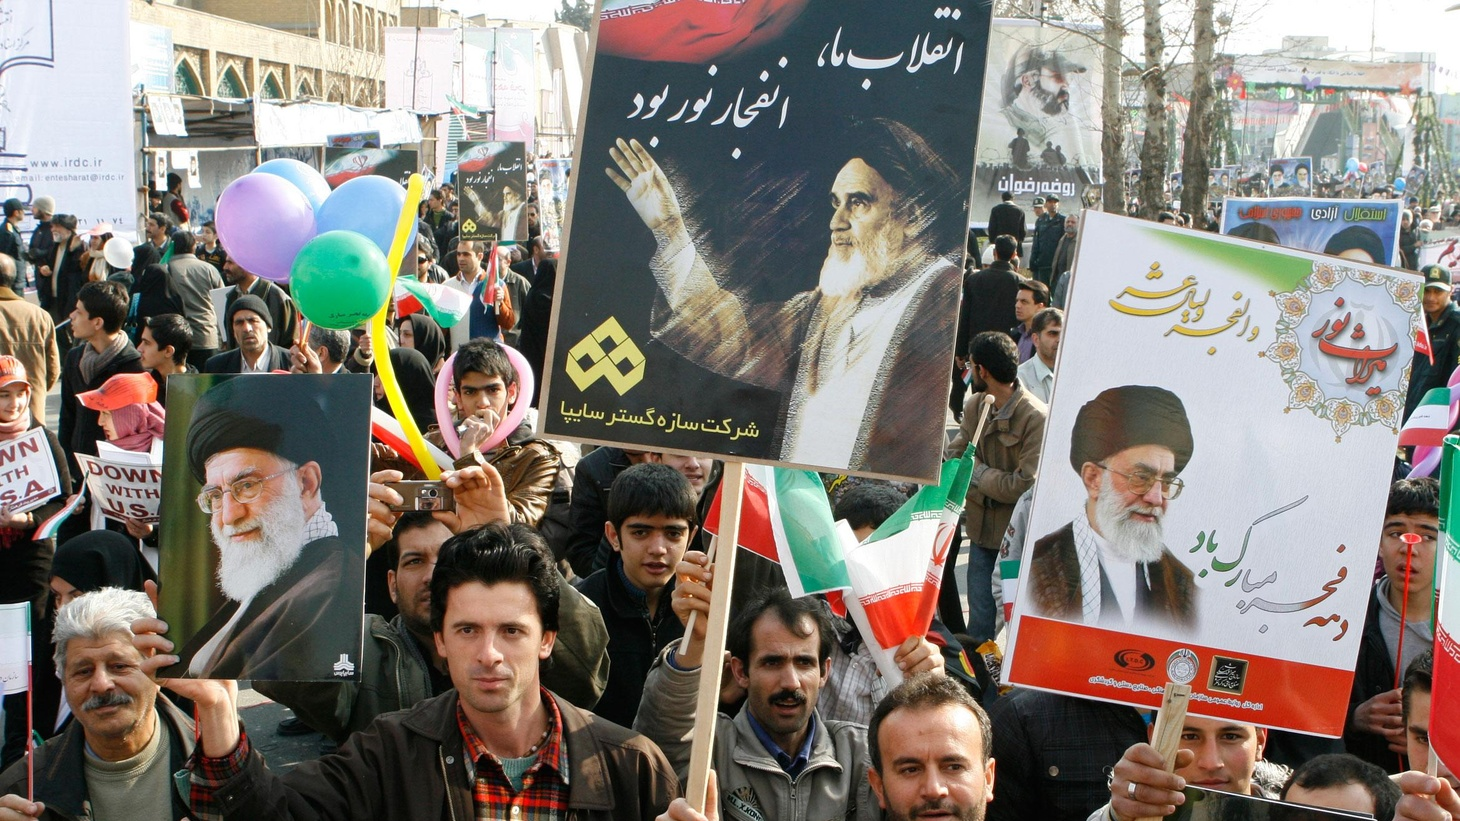 """On the thirty-first anniversary of the Islamic revolution, Iran is marked by ongoing turmoil. There's pressure within from a protest movement that wants regime change, and pressure without from an international community that wants to curb Iran's nuclear ambitions. Guest host Sara Terry explores how the revolution has changed Iran and Iranians. What role do the clerics who led the revolution play in the country today? Also, an """"angry"""" dissatisfaction with Washington, and an anniversary of a different kind. Twenty years ago today Nelson Mandela became a free man."""